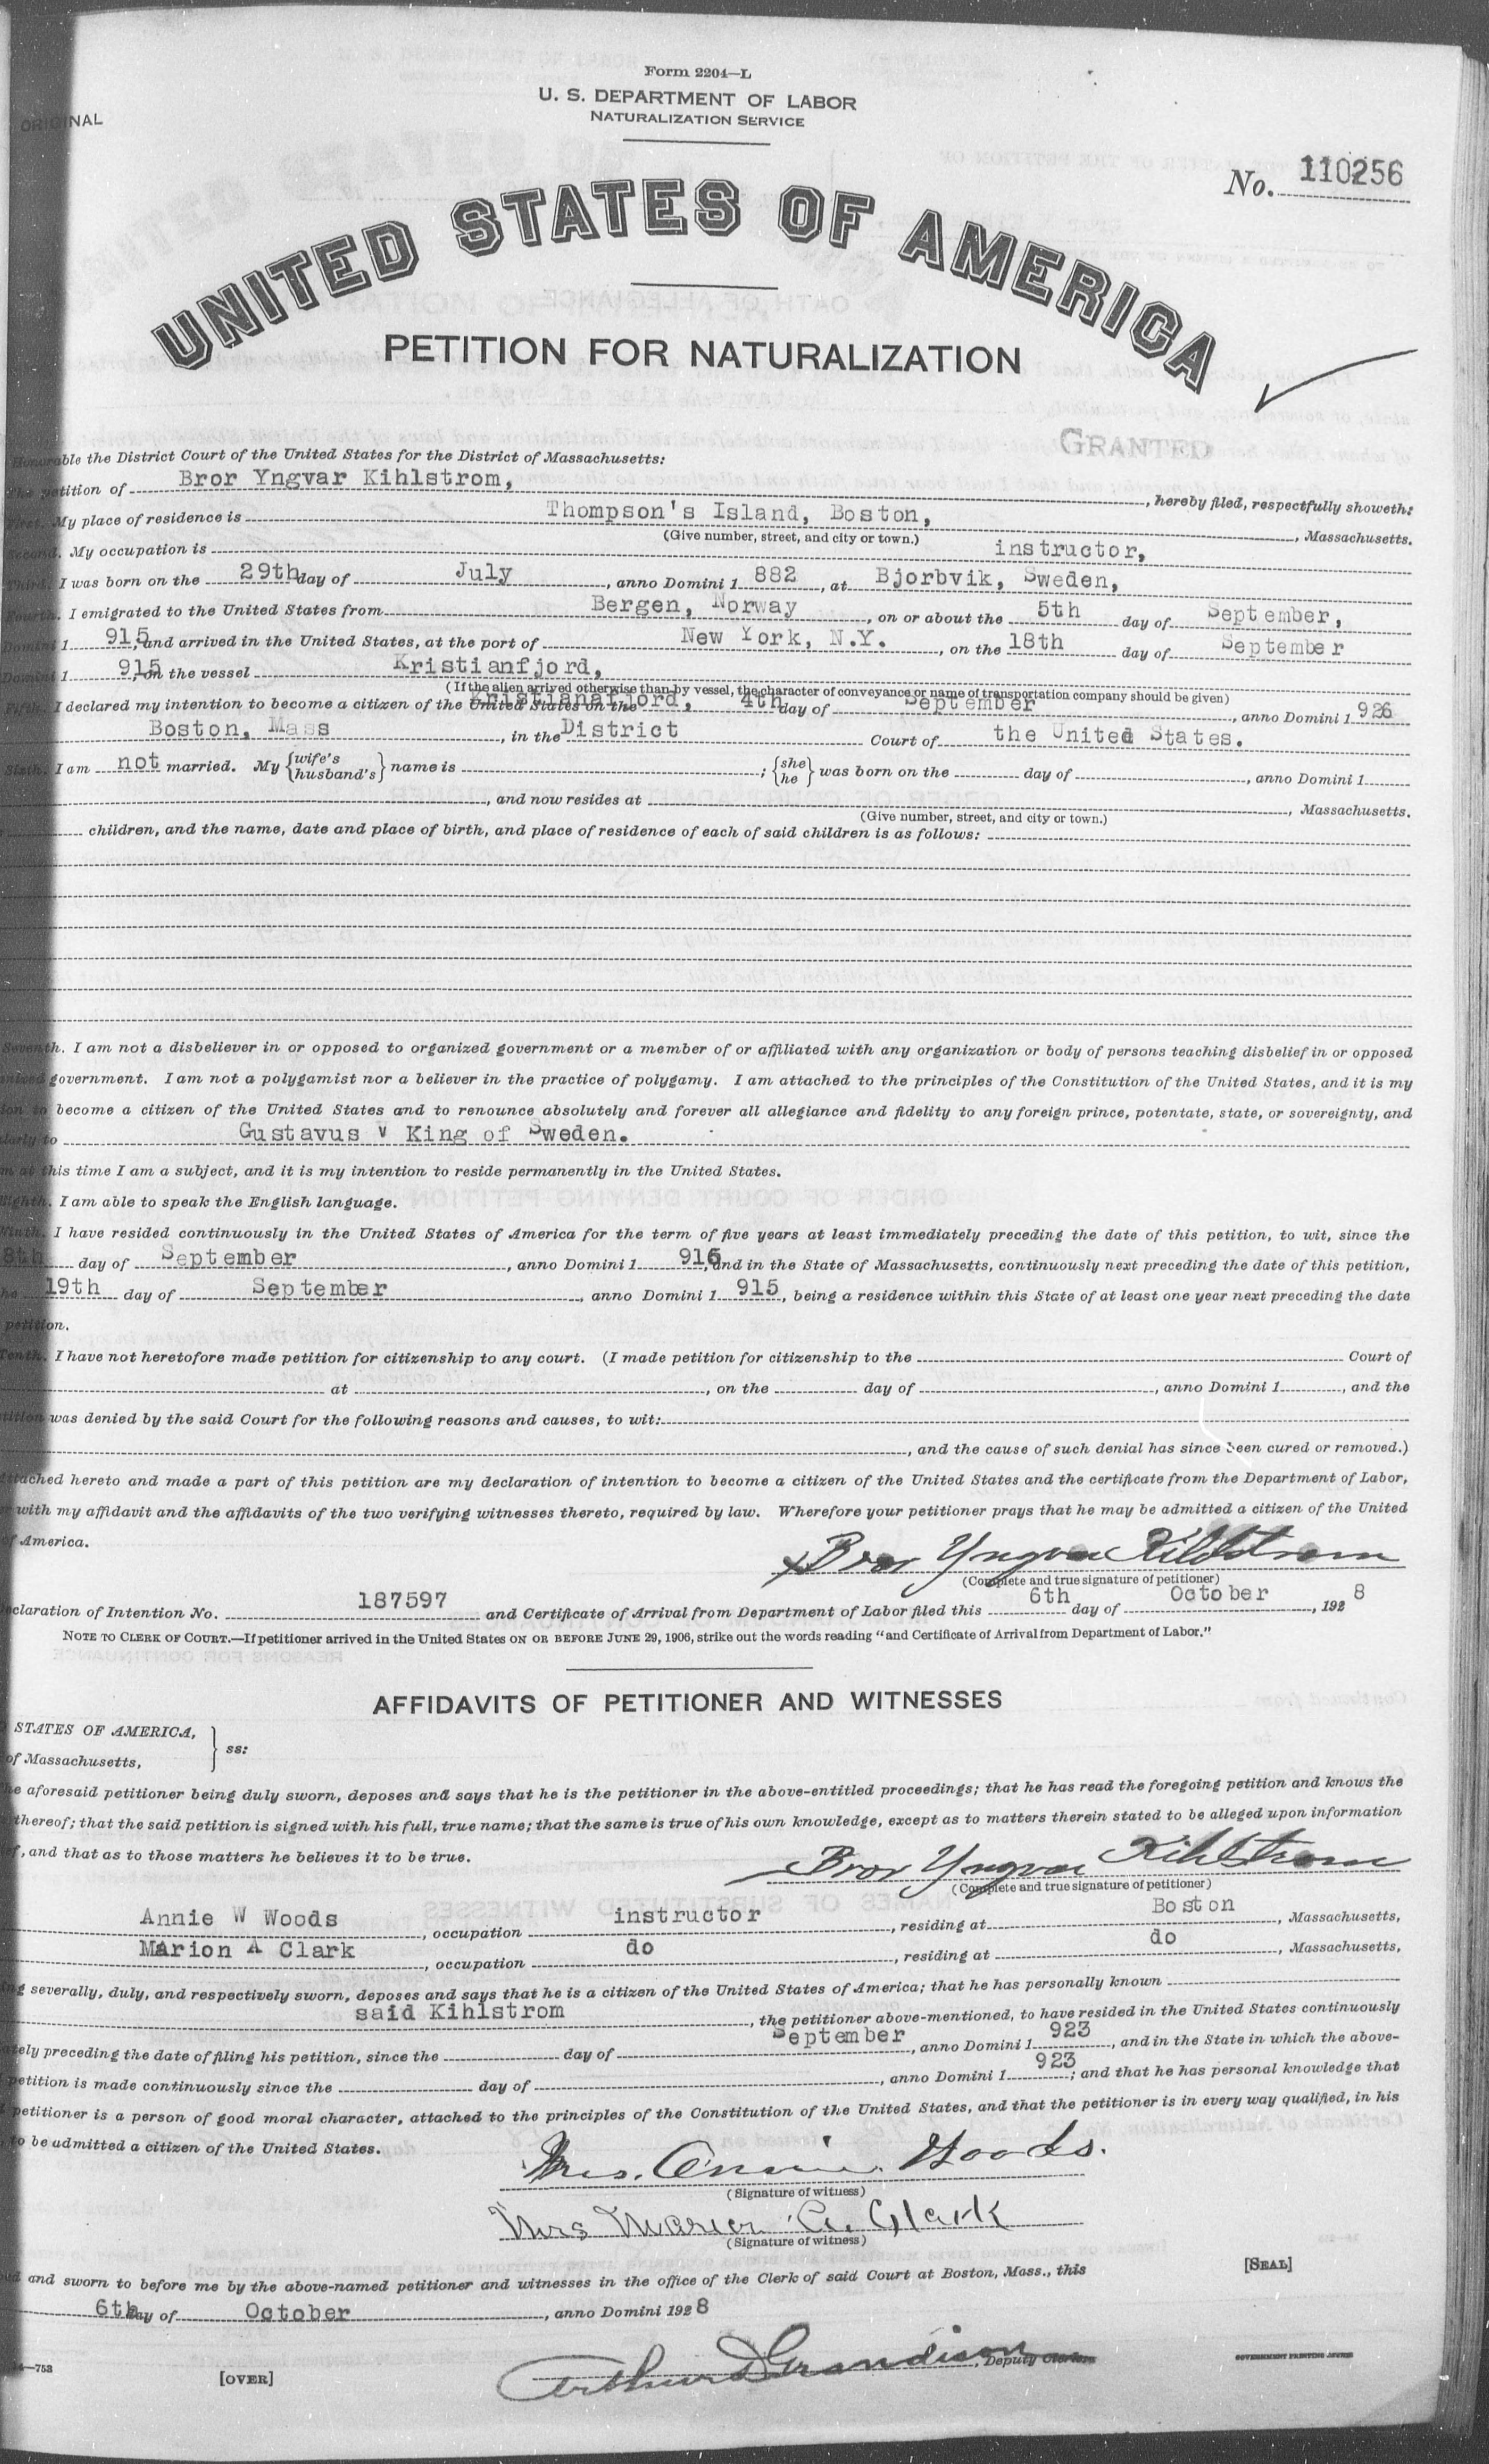 Petition for Naturalization of Bror Yngvar Kihlstrom